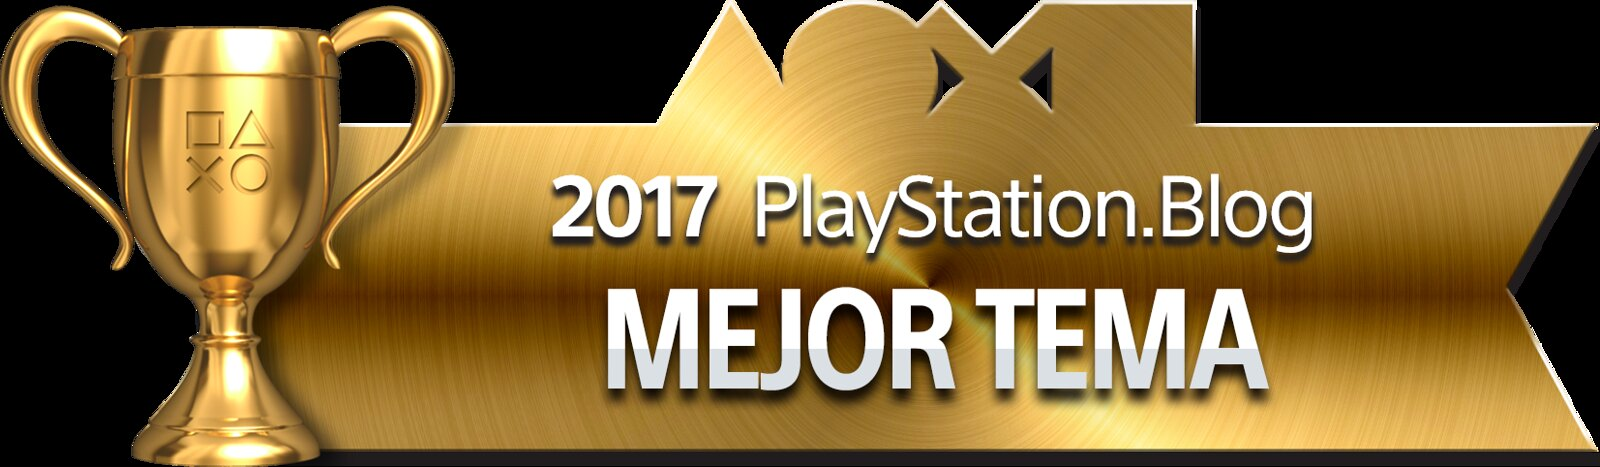 PlayStation Blog Game of the Year 2017 - Best PS4 Theme (Gold)